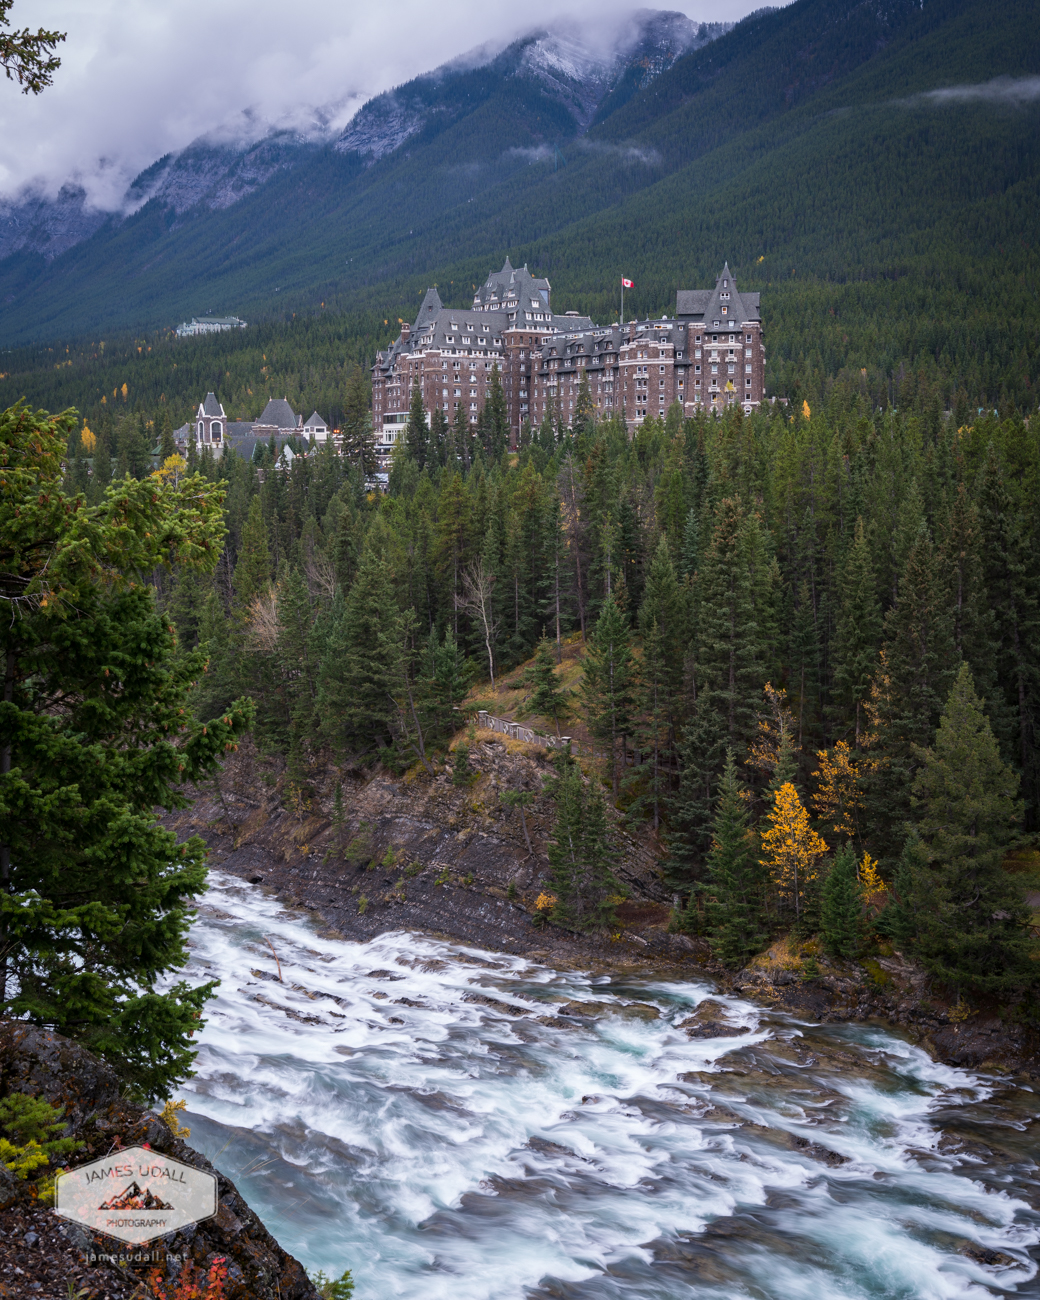 Fairmont Hotel in Banff